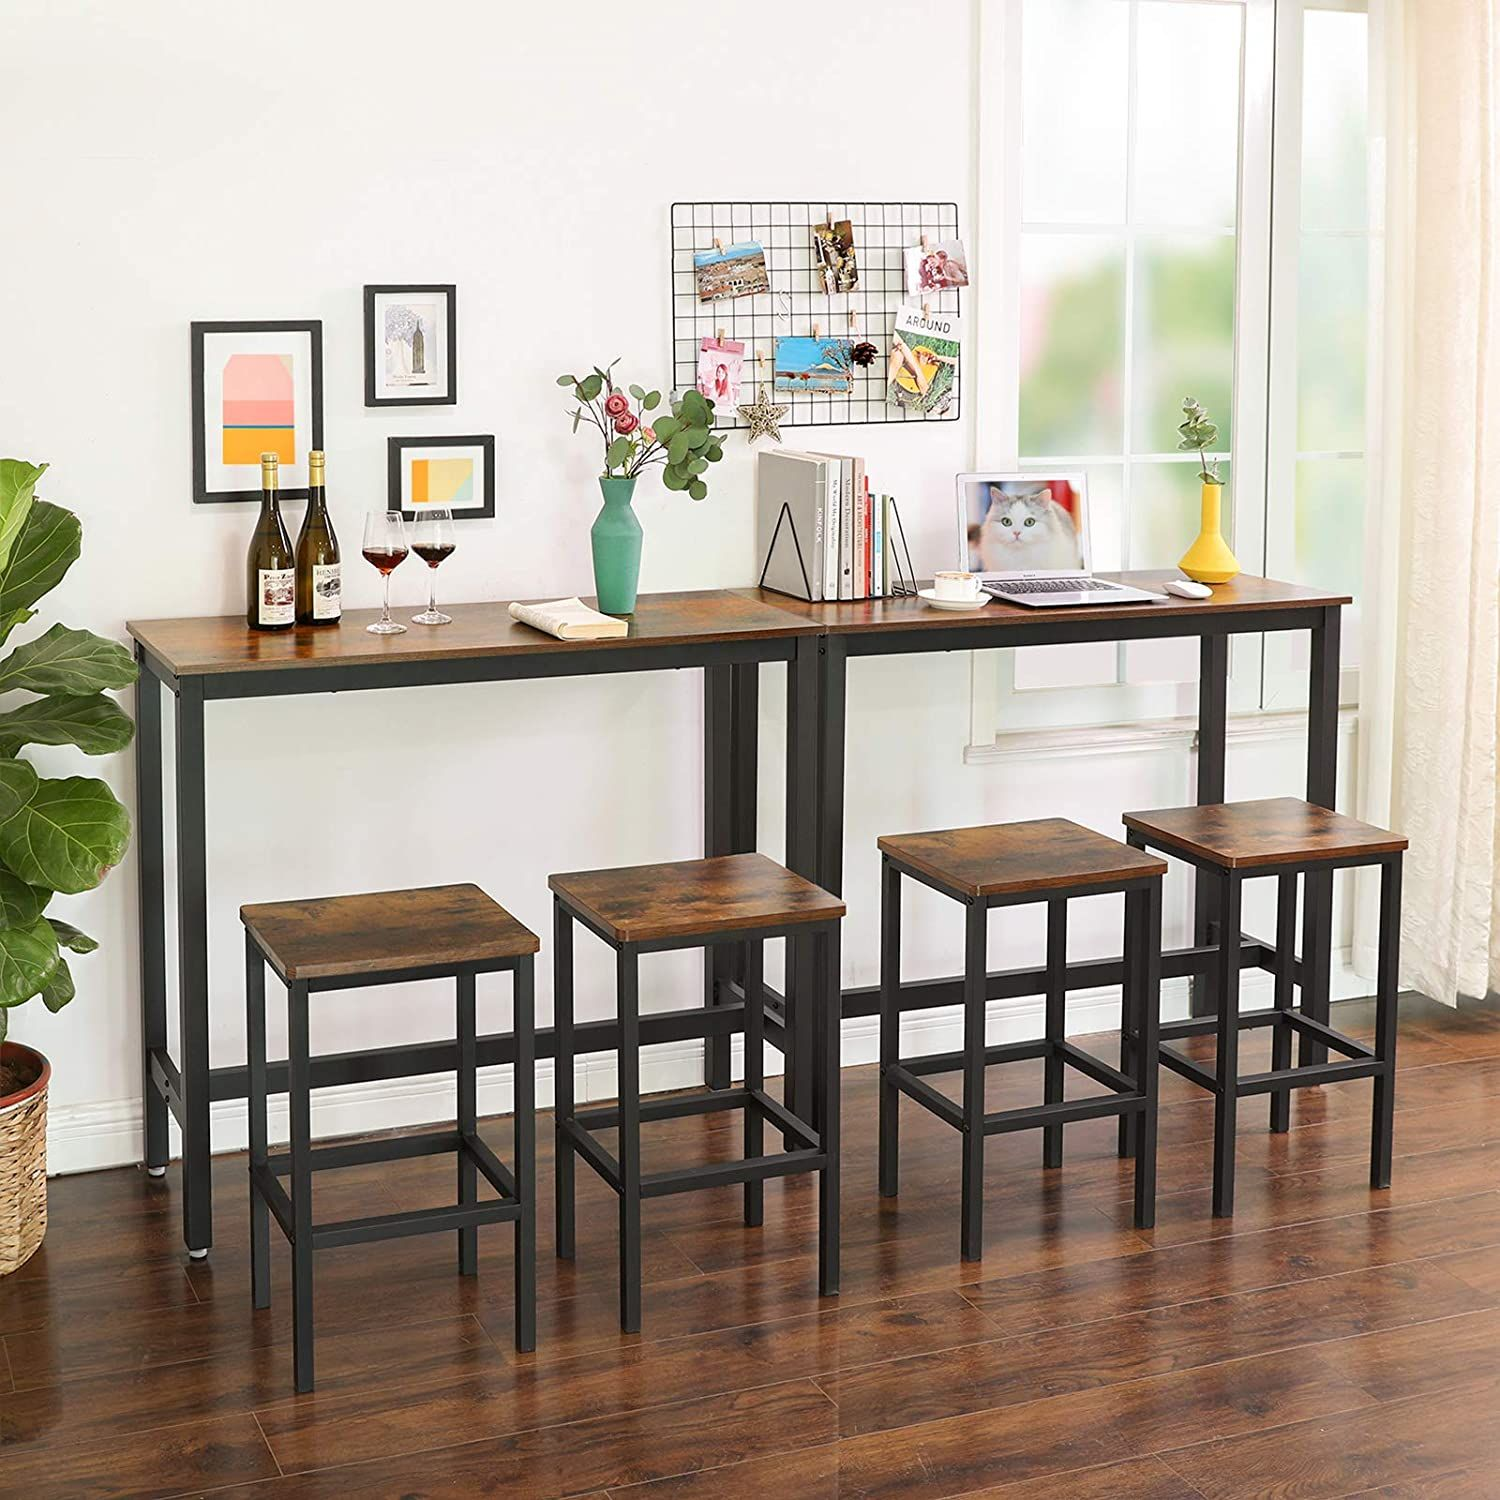 Industrial Narrow Bar Table For Sale Home Furniture In 2021 High Bar Table Dining Room Small Bar Table